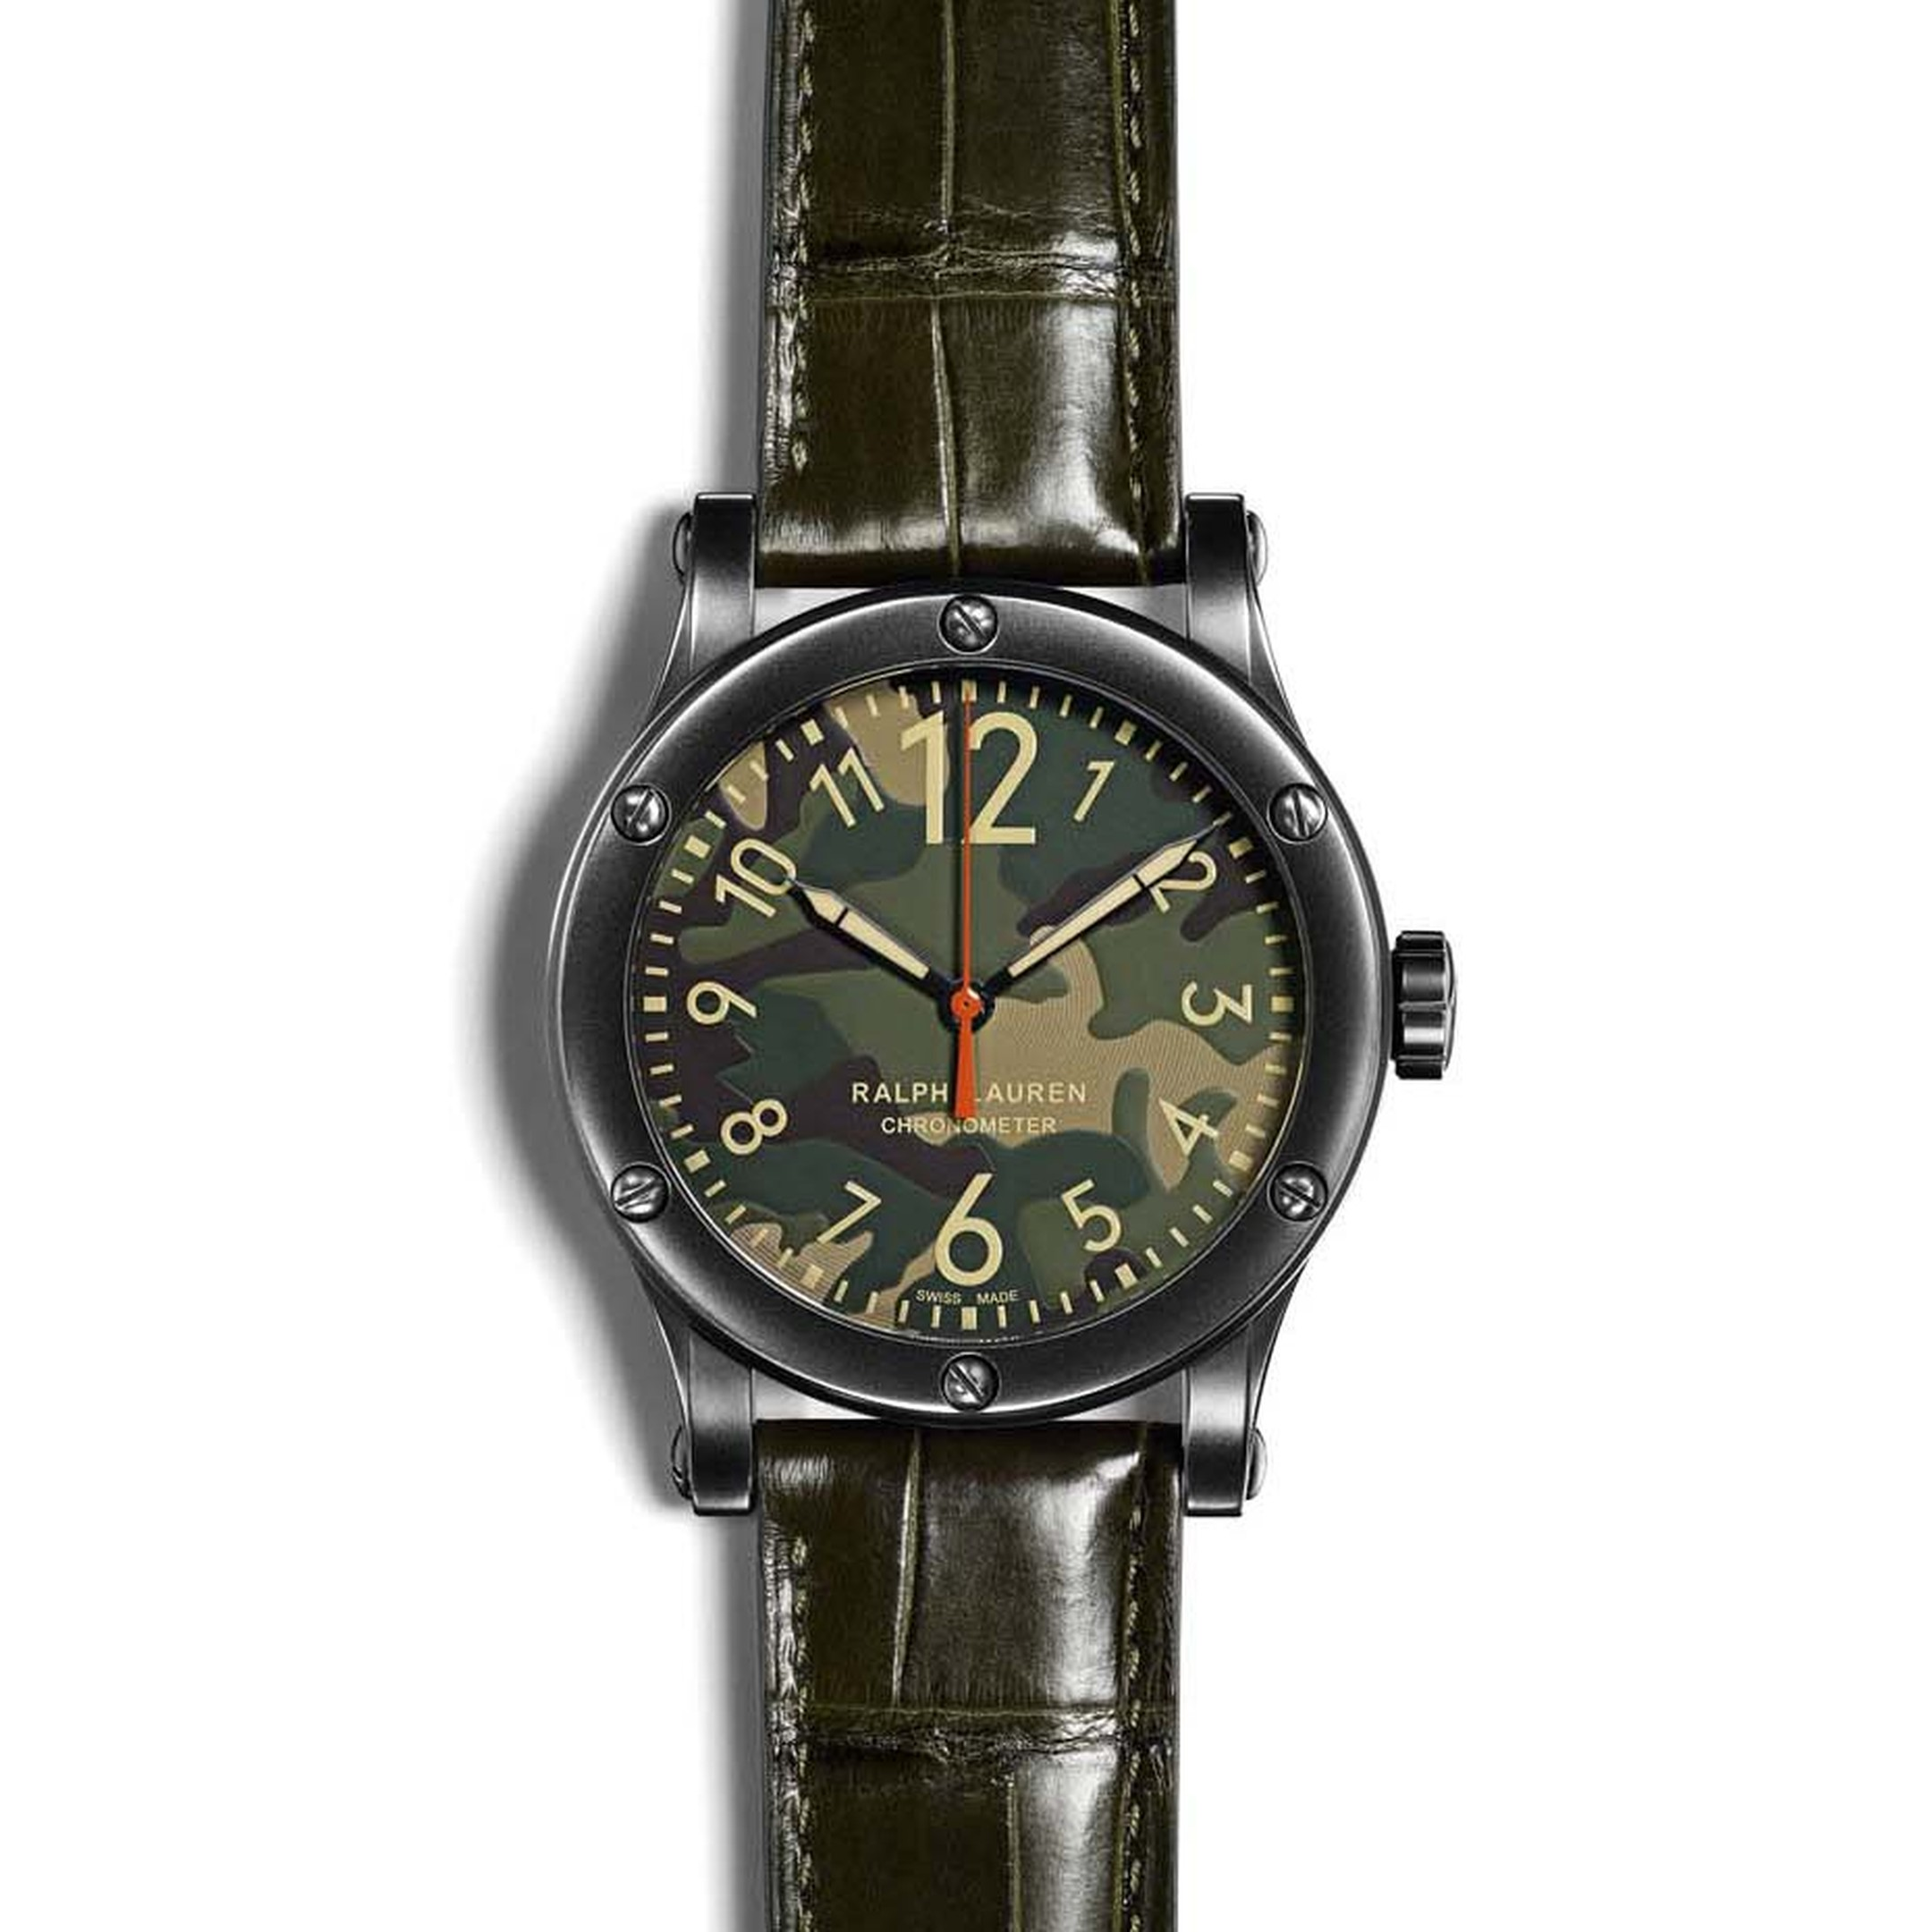 Like its brother with the khaki dial, the new Ralph Lauren RL67 Safari Chronometer with a camouflage dial - available with a 39 or 45mm blackened steel case - is equipped with an automatic calibre RL300-1 - a Swiss COSC-certified chronometer movement, wat